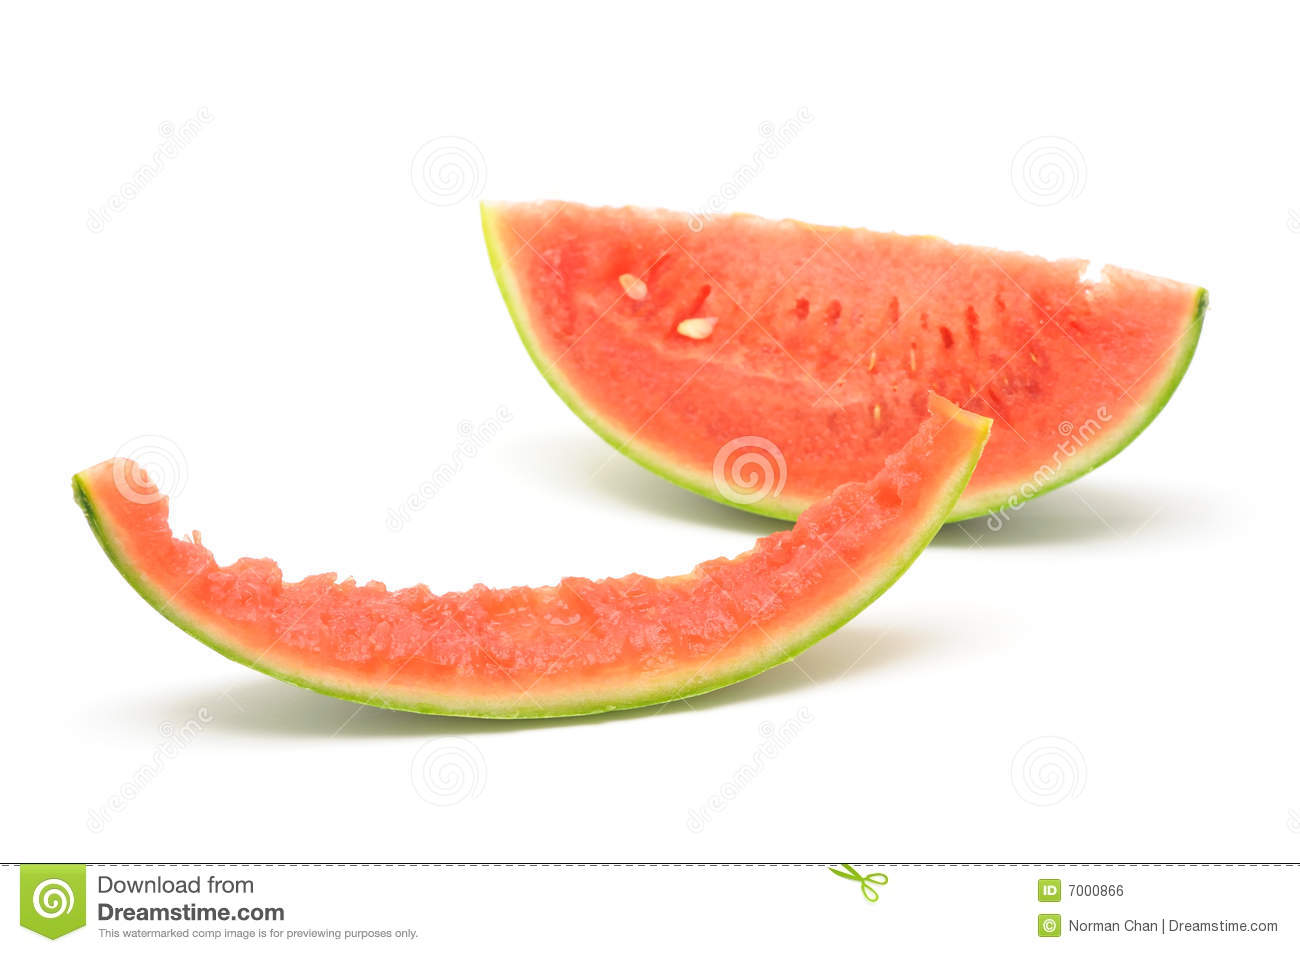 what to do with watermelon skin